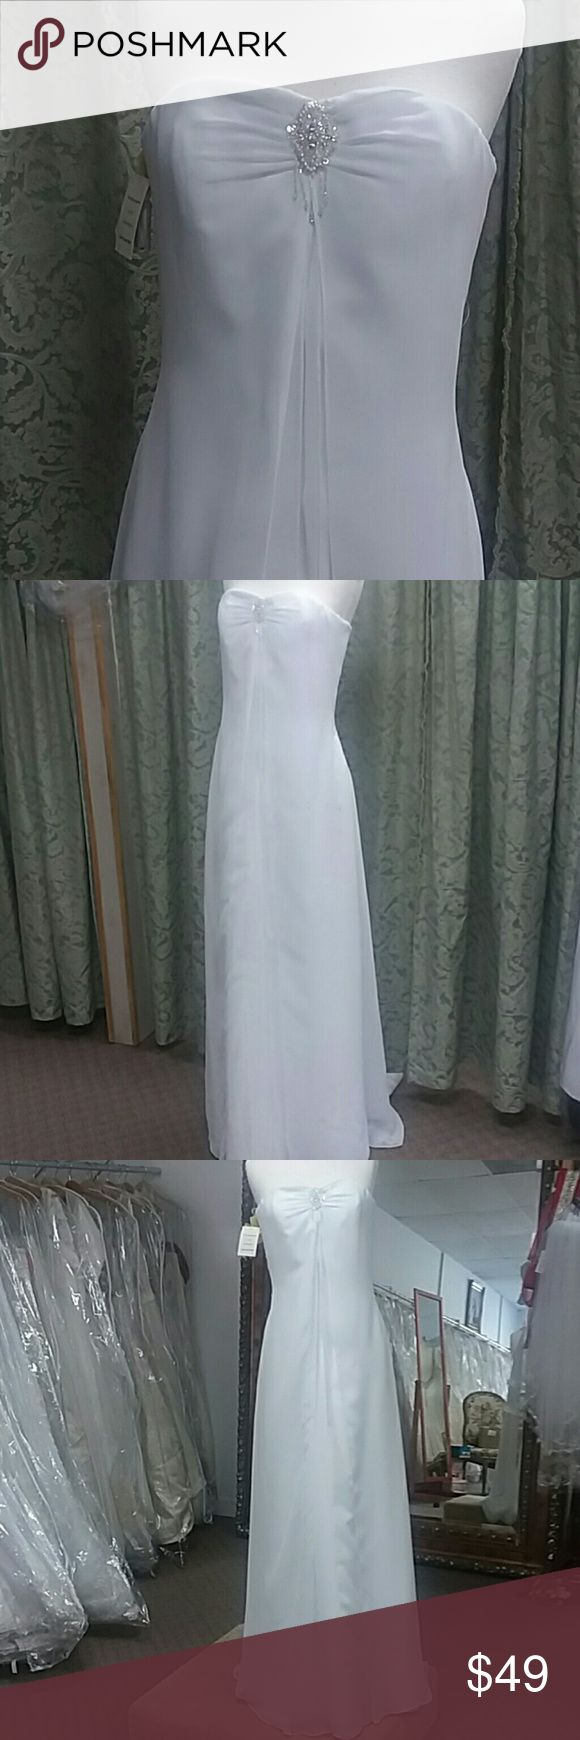 NWT Eden Bridals wedding gown Strapless chiffon wedding gown with split front. Zipper back. Small train. This was a sample gown and has been tried on but not worn. Eden Dresses Wedding